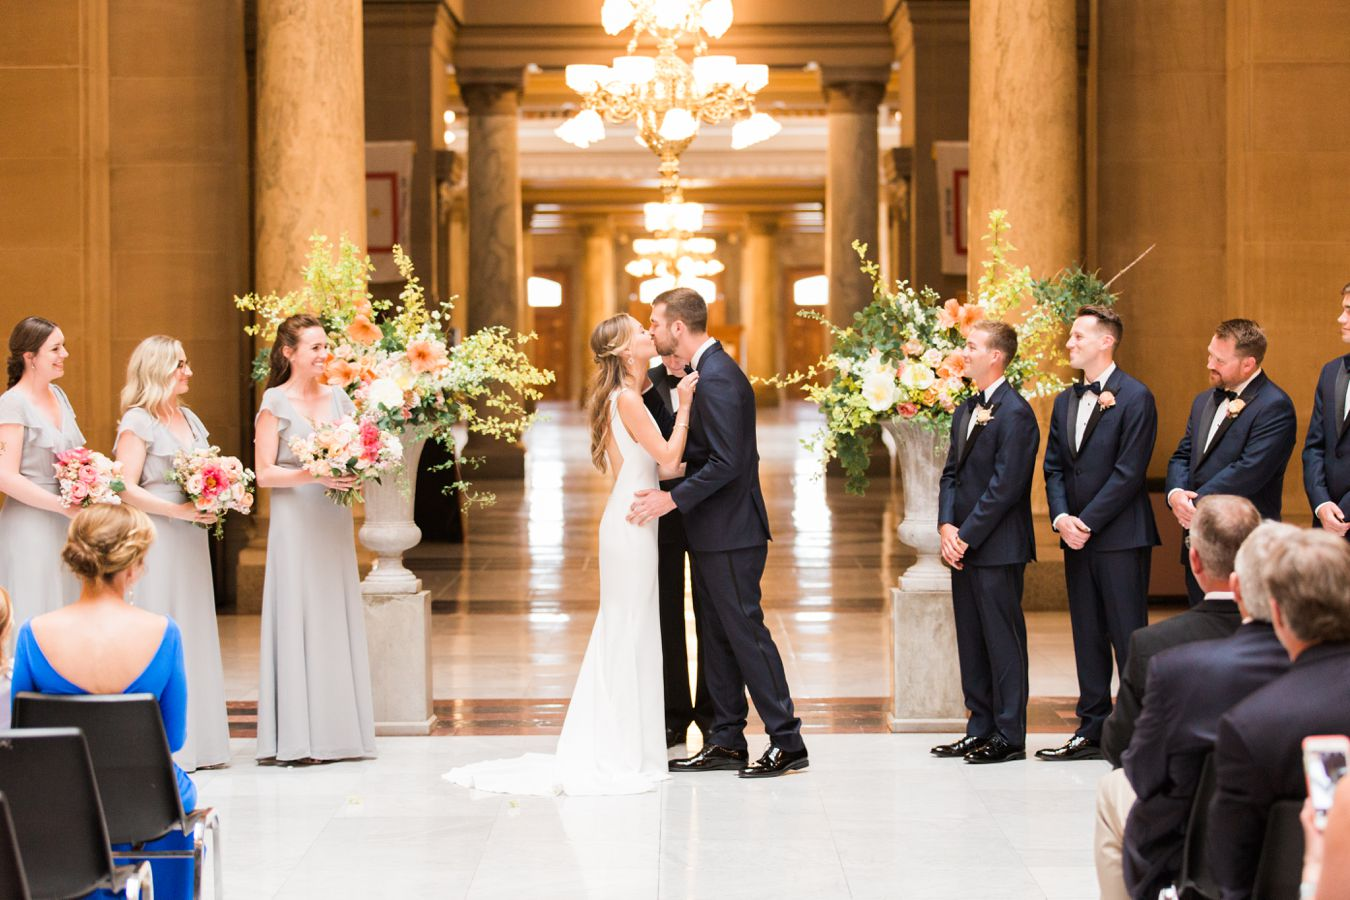 State Capital Building Indianapolis Wedding Photography | Cory Weber Photography